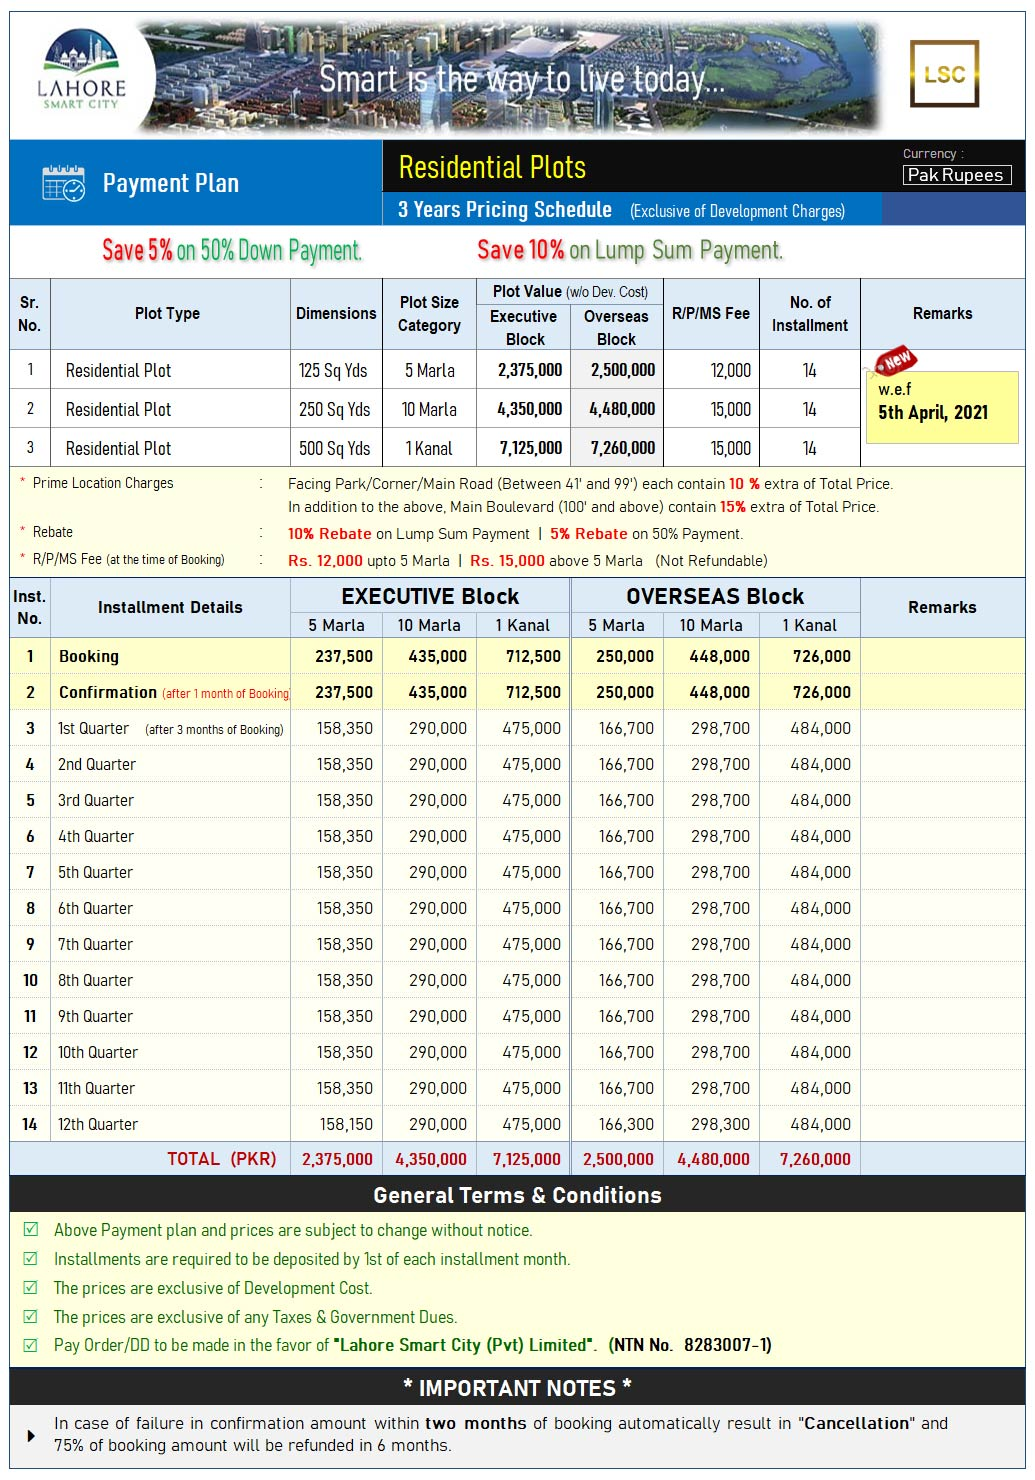 payment_plan_OF lahore smart city